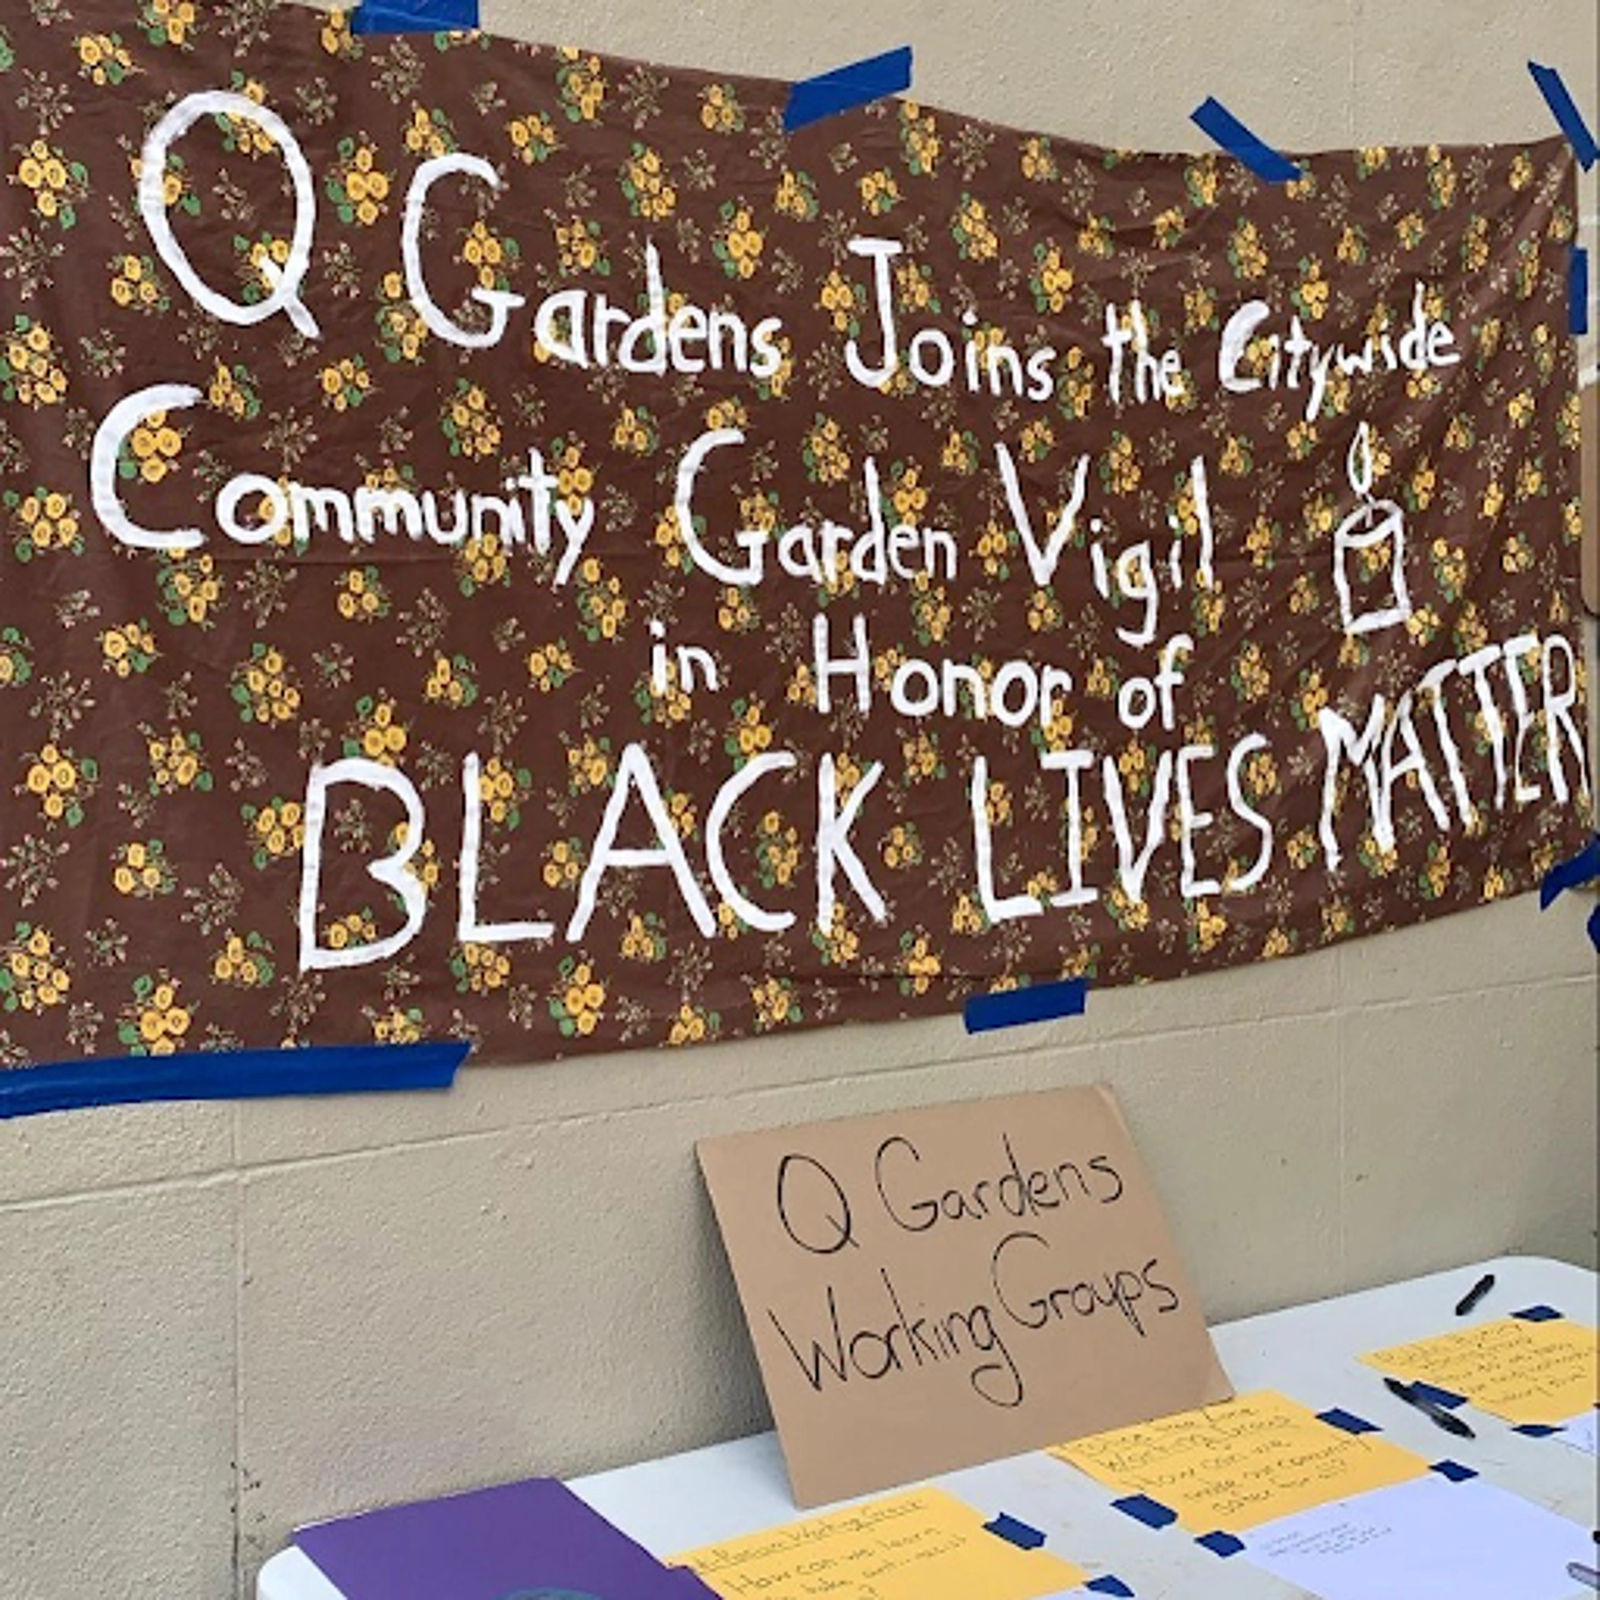 """Banner saying """"Q Gardens joins the citywide community garden vigil in honor of Black Lives Matter."""""""